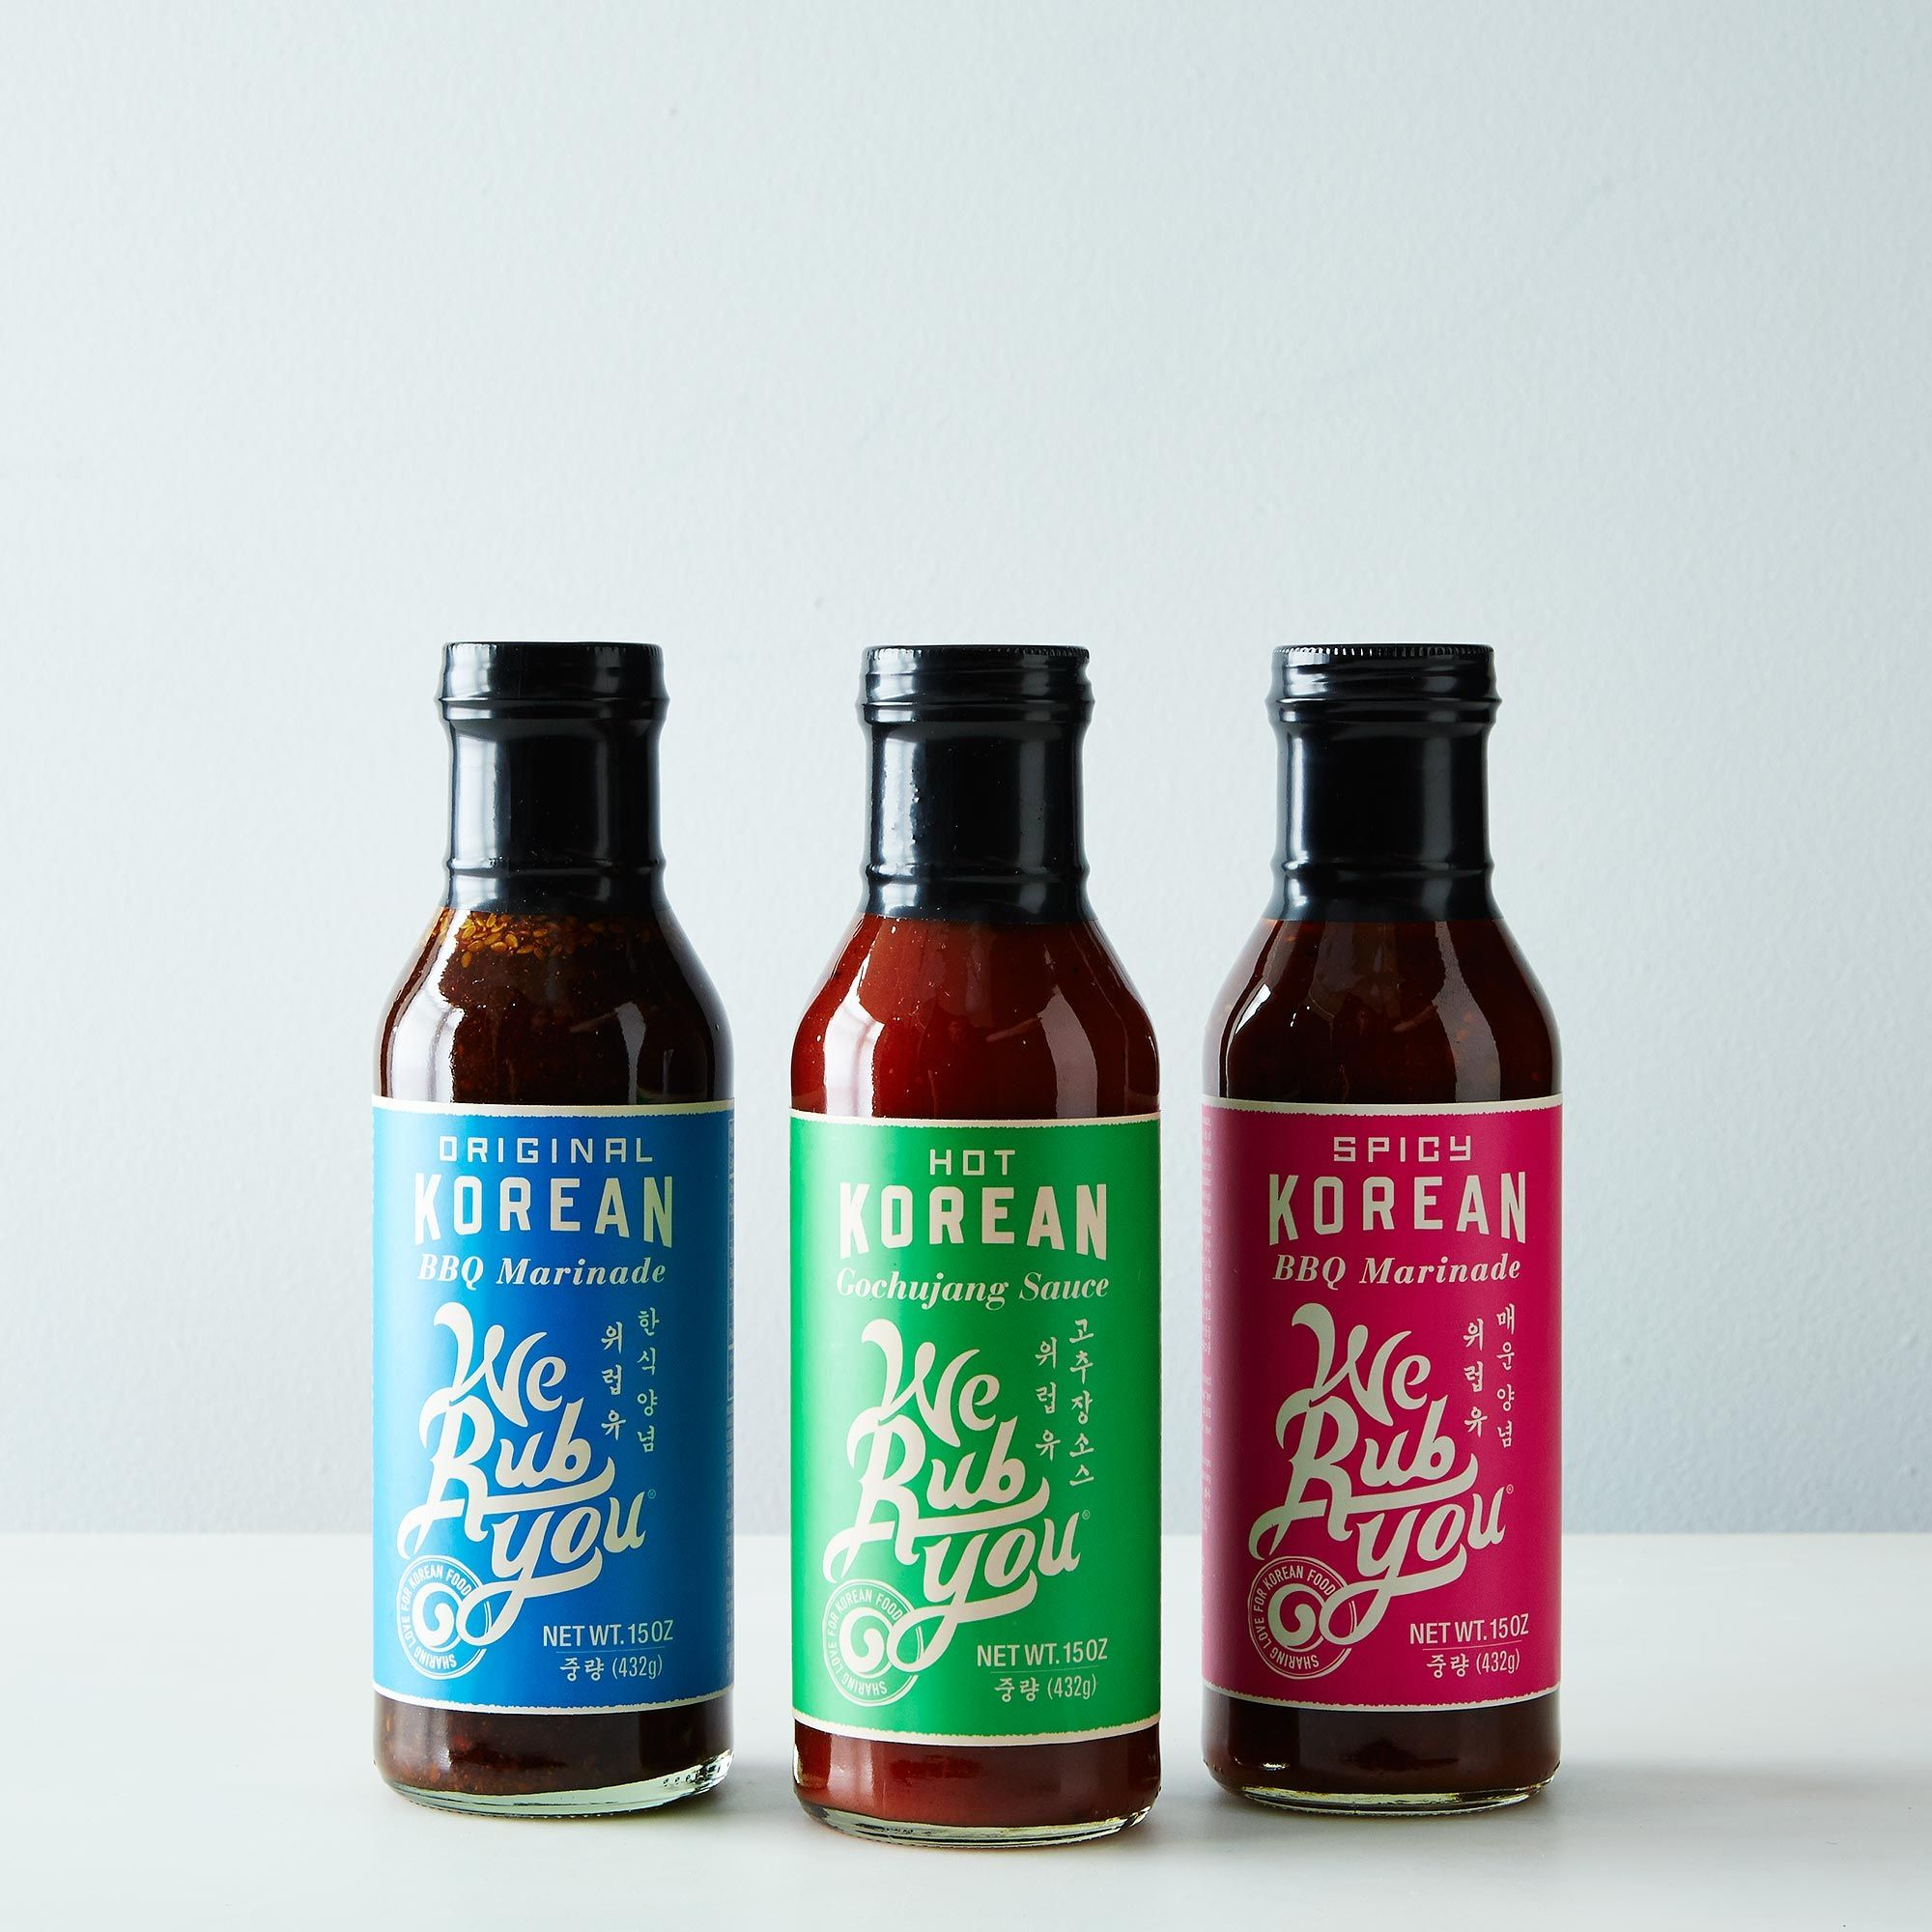 Cd5bfee8 8a5e 4f23 9ce6 57271ec24bd9  2014 0609 we rub you korean marinade variety pack 006